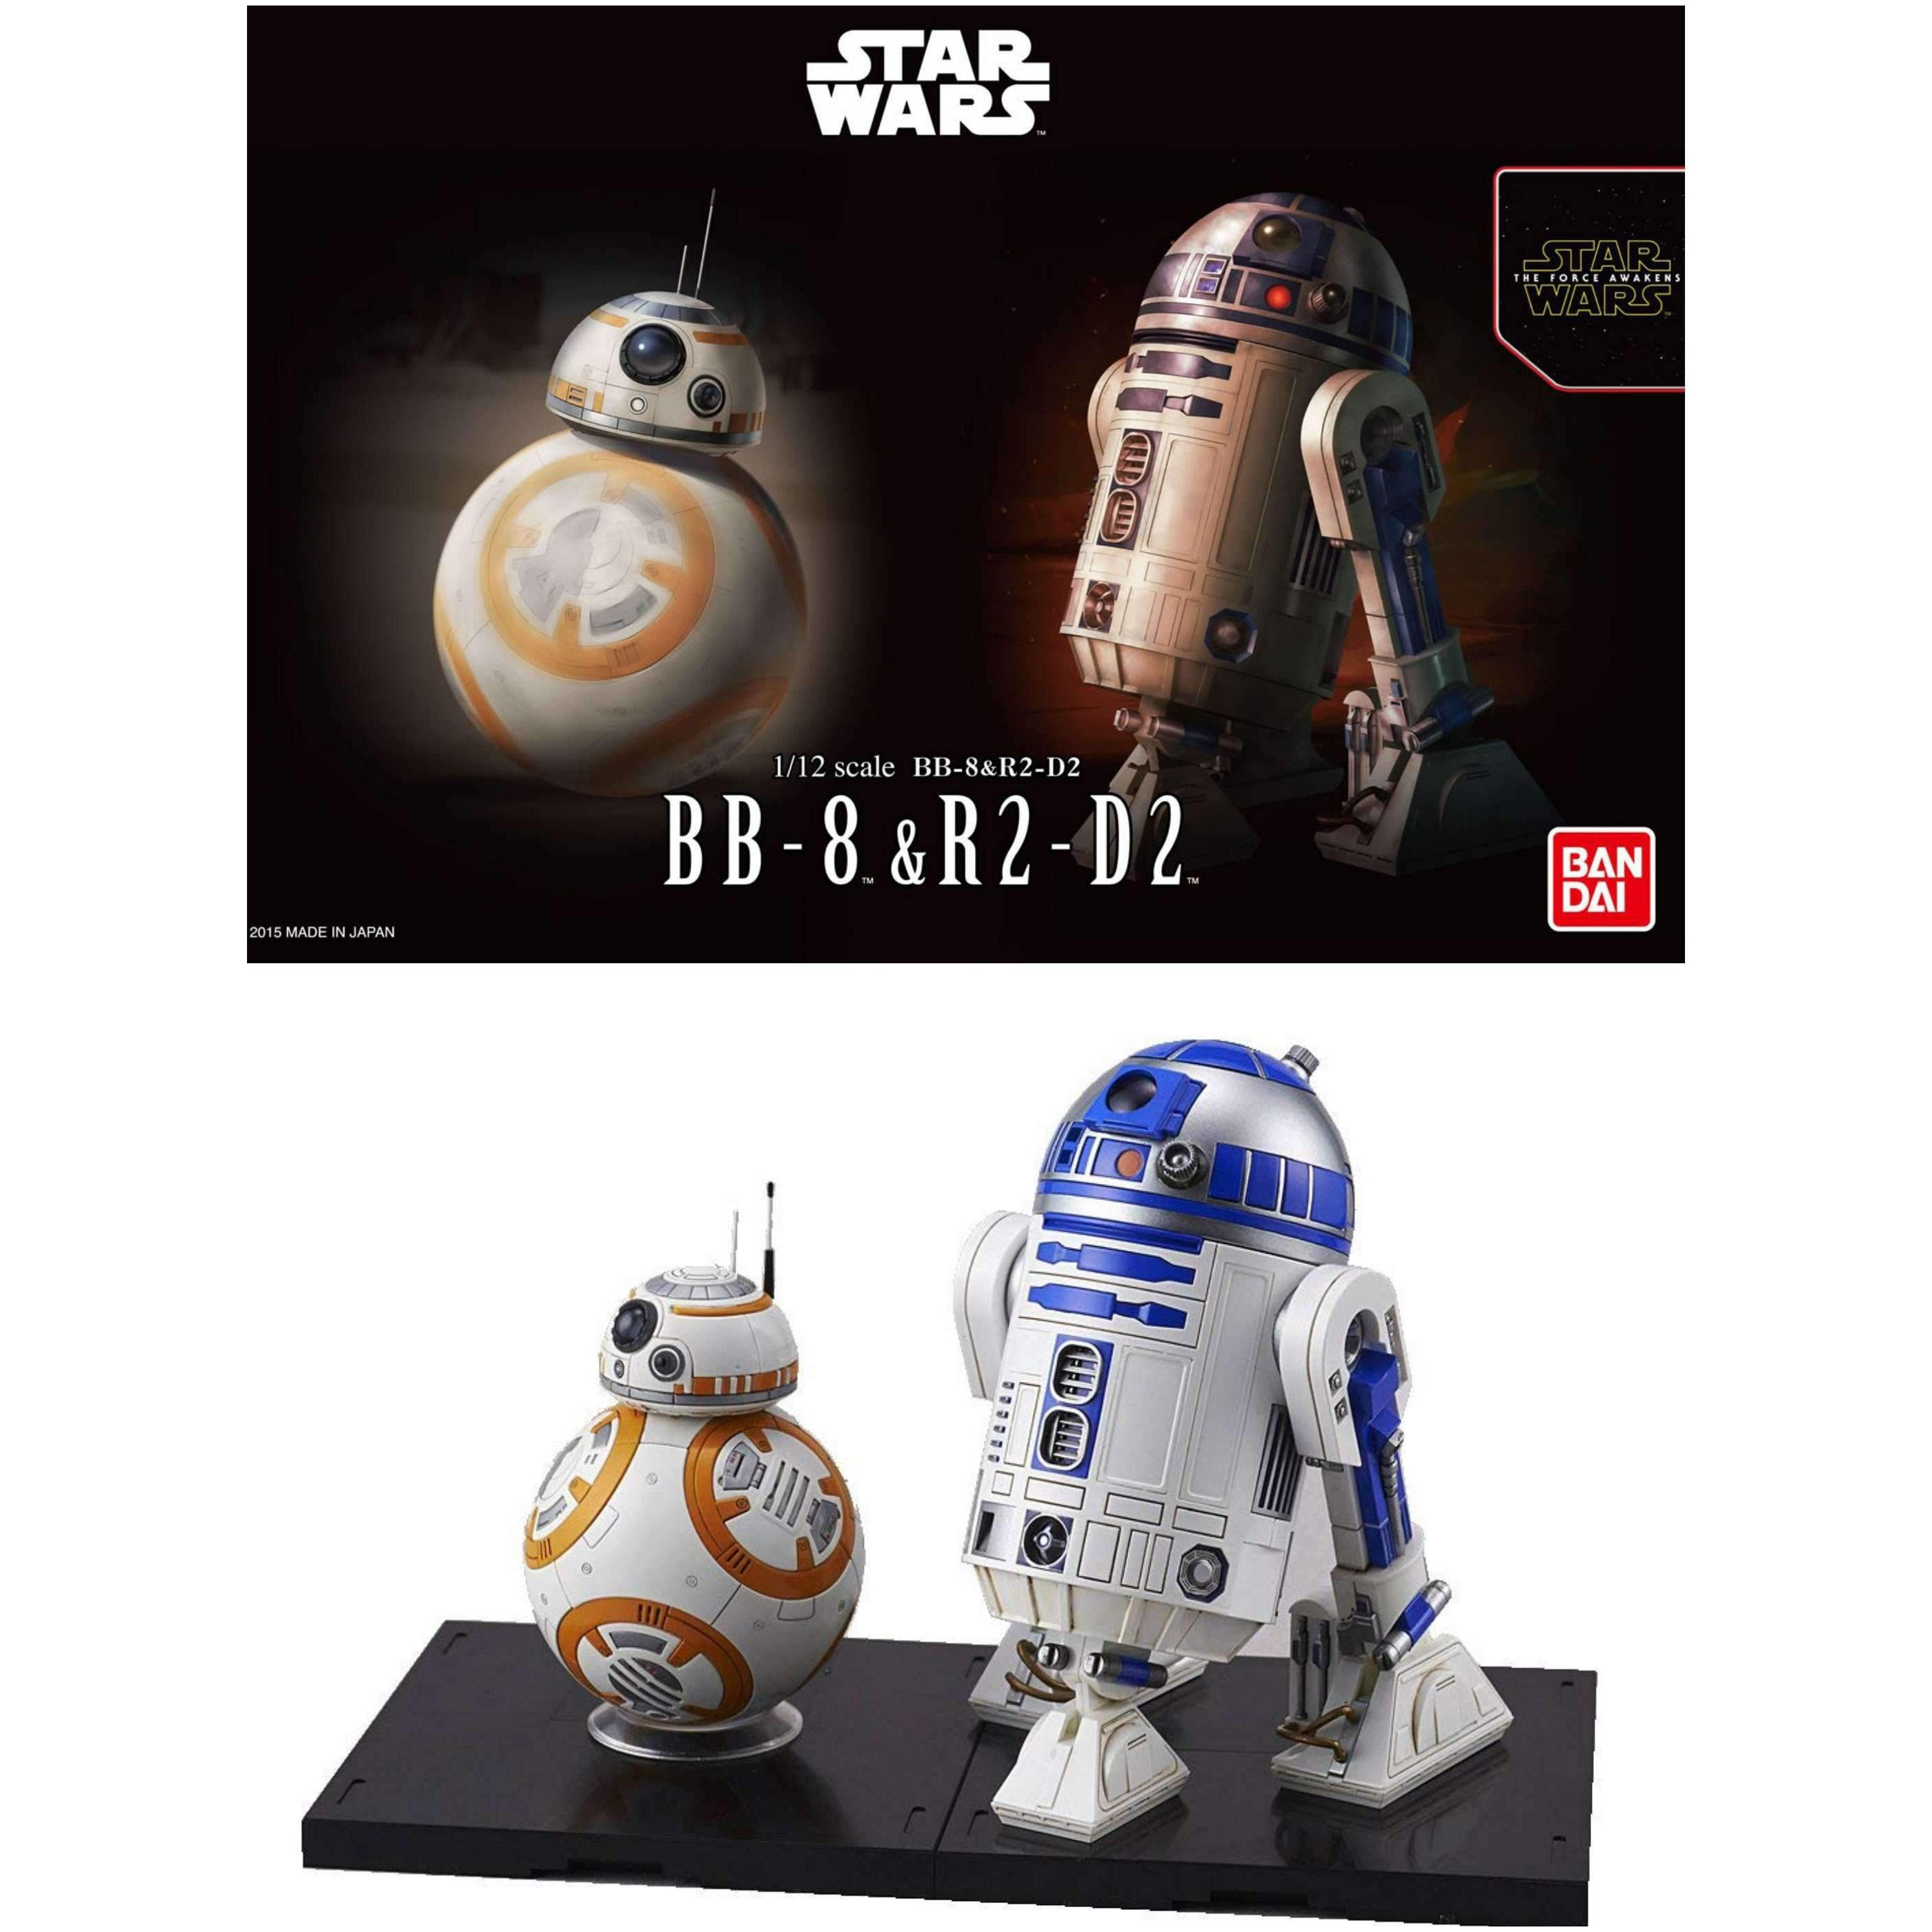 Image of Star Wars BB-8 & R2-D2 1/12 Scale Model